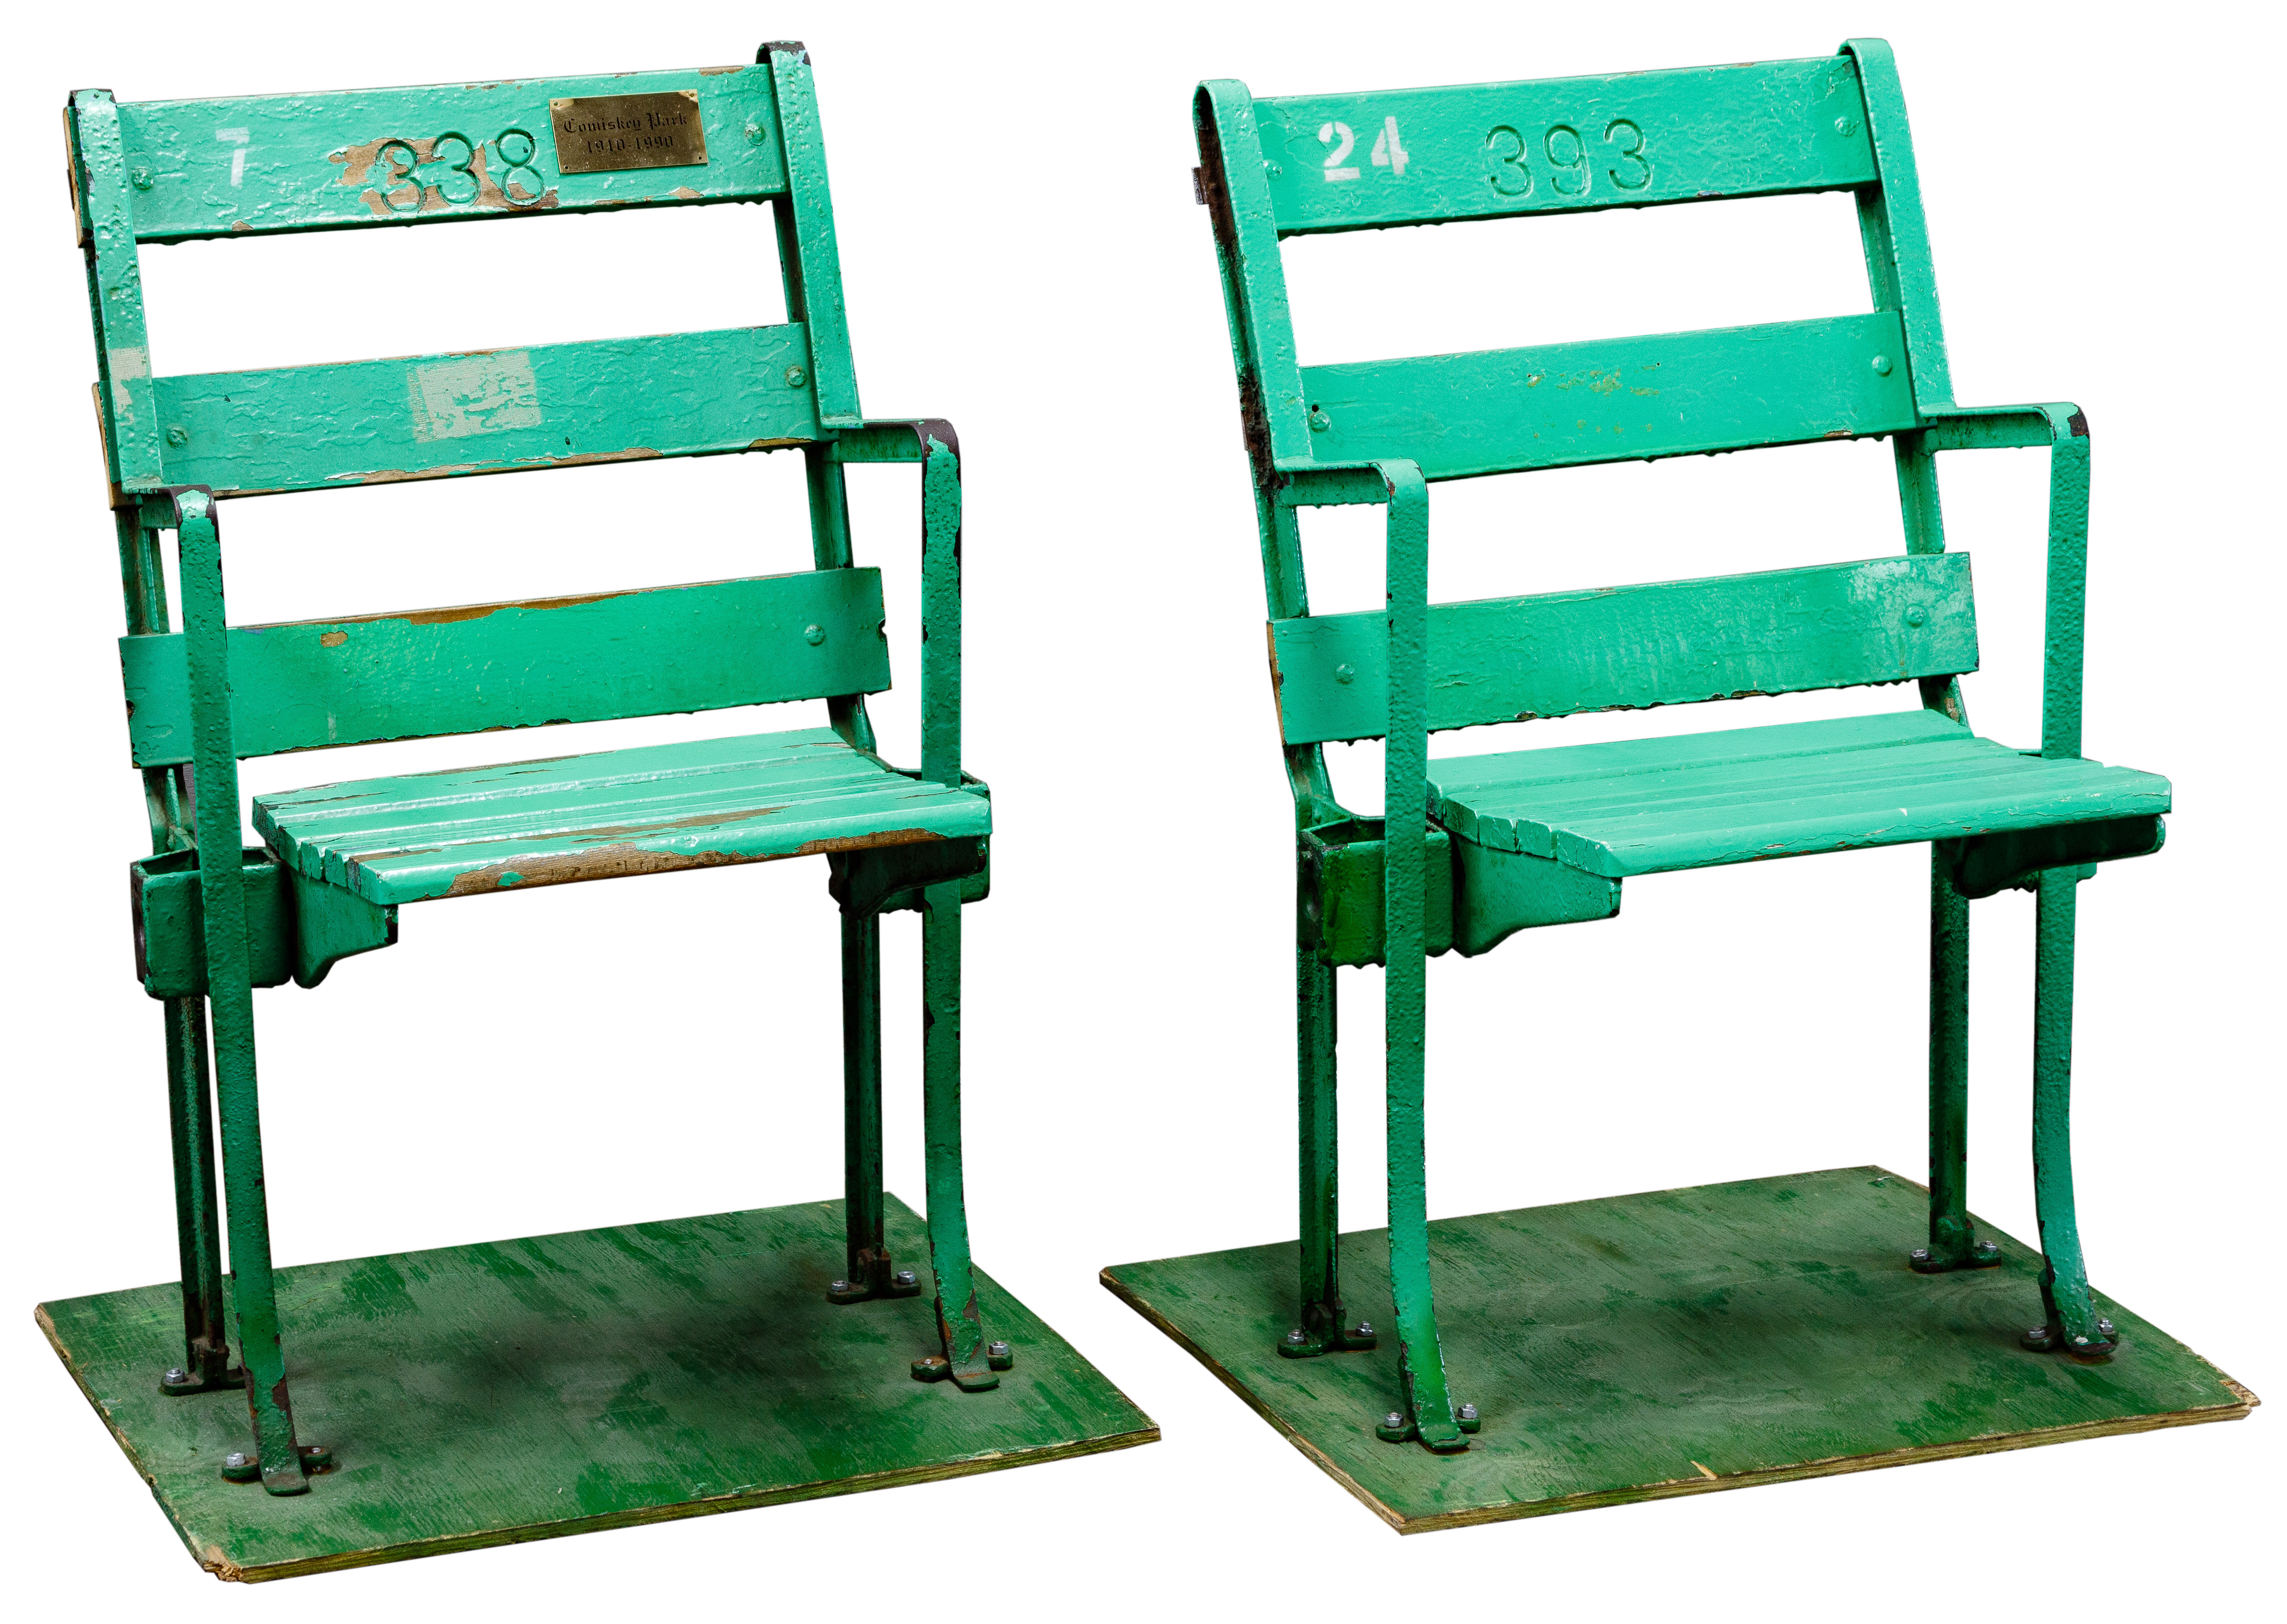 Terrific Chicago White Sox Comiskey Park Stadium Seats Onthecornerstone Fun Painted Chair Ideas Images Onthecornerstoneorg